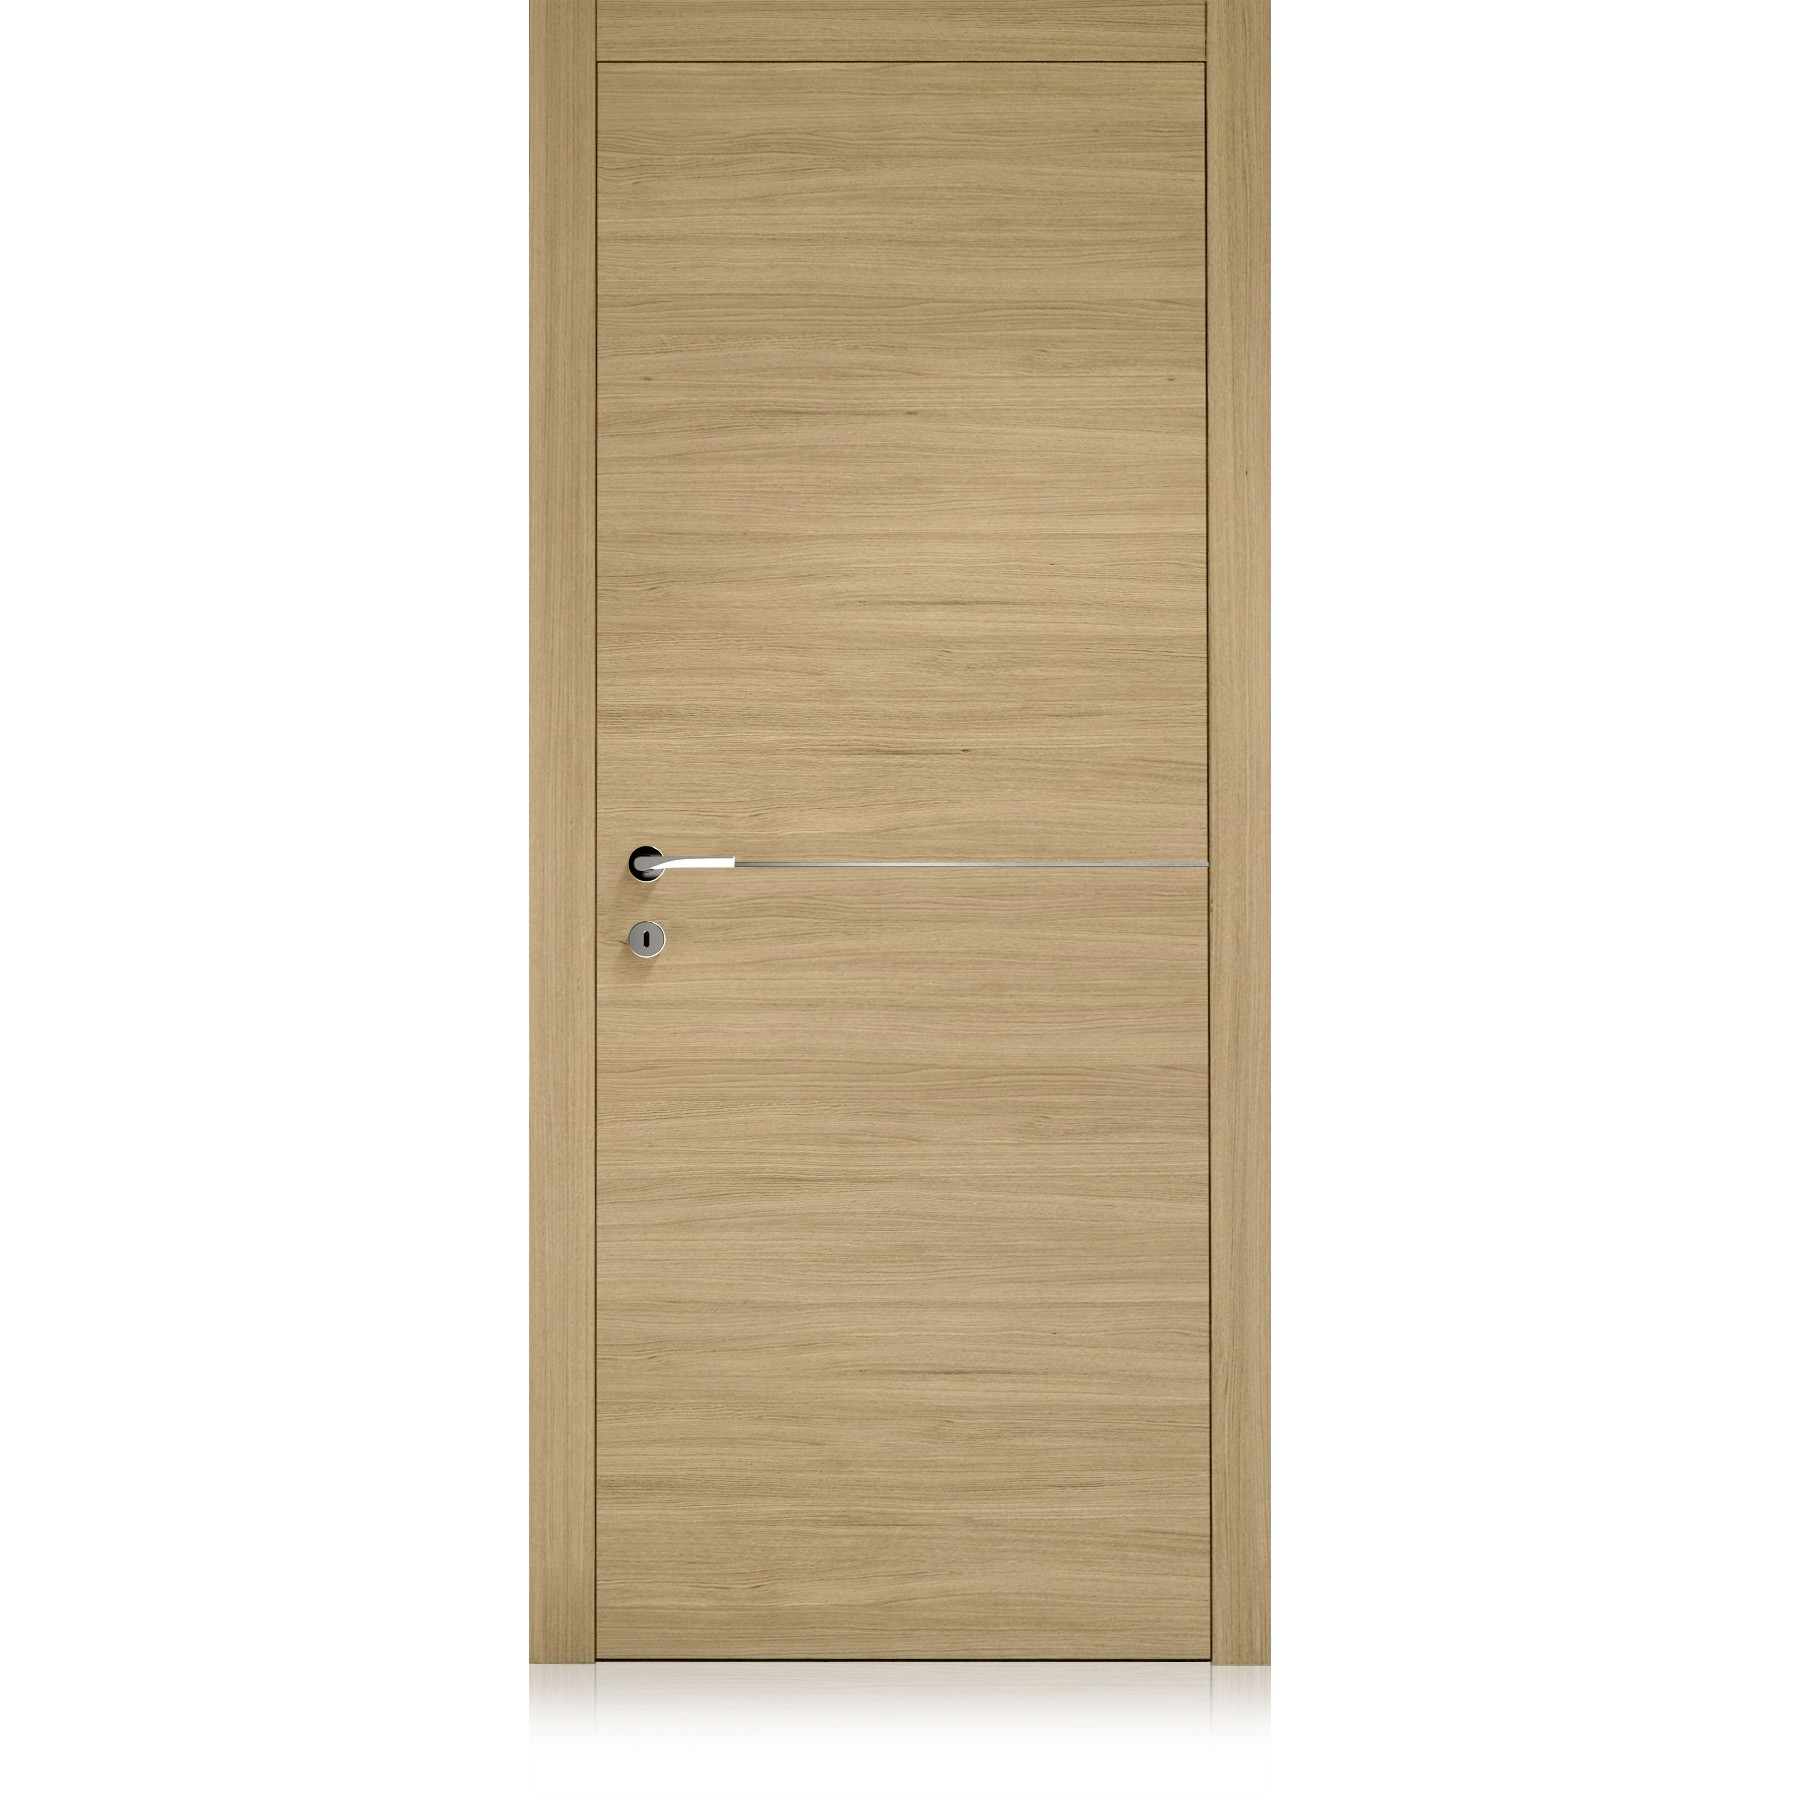 Logica / 1 rovere gold door